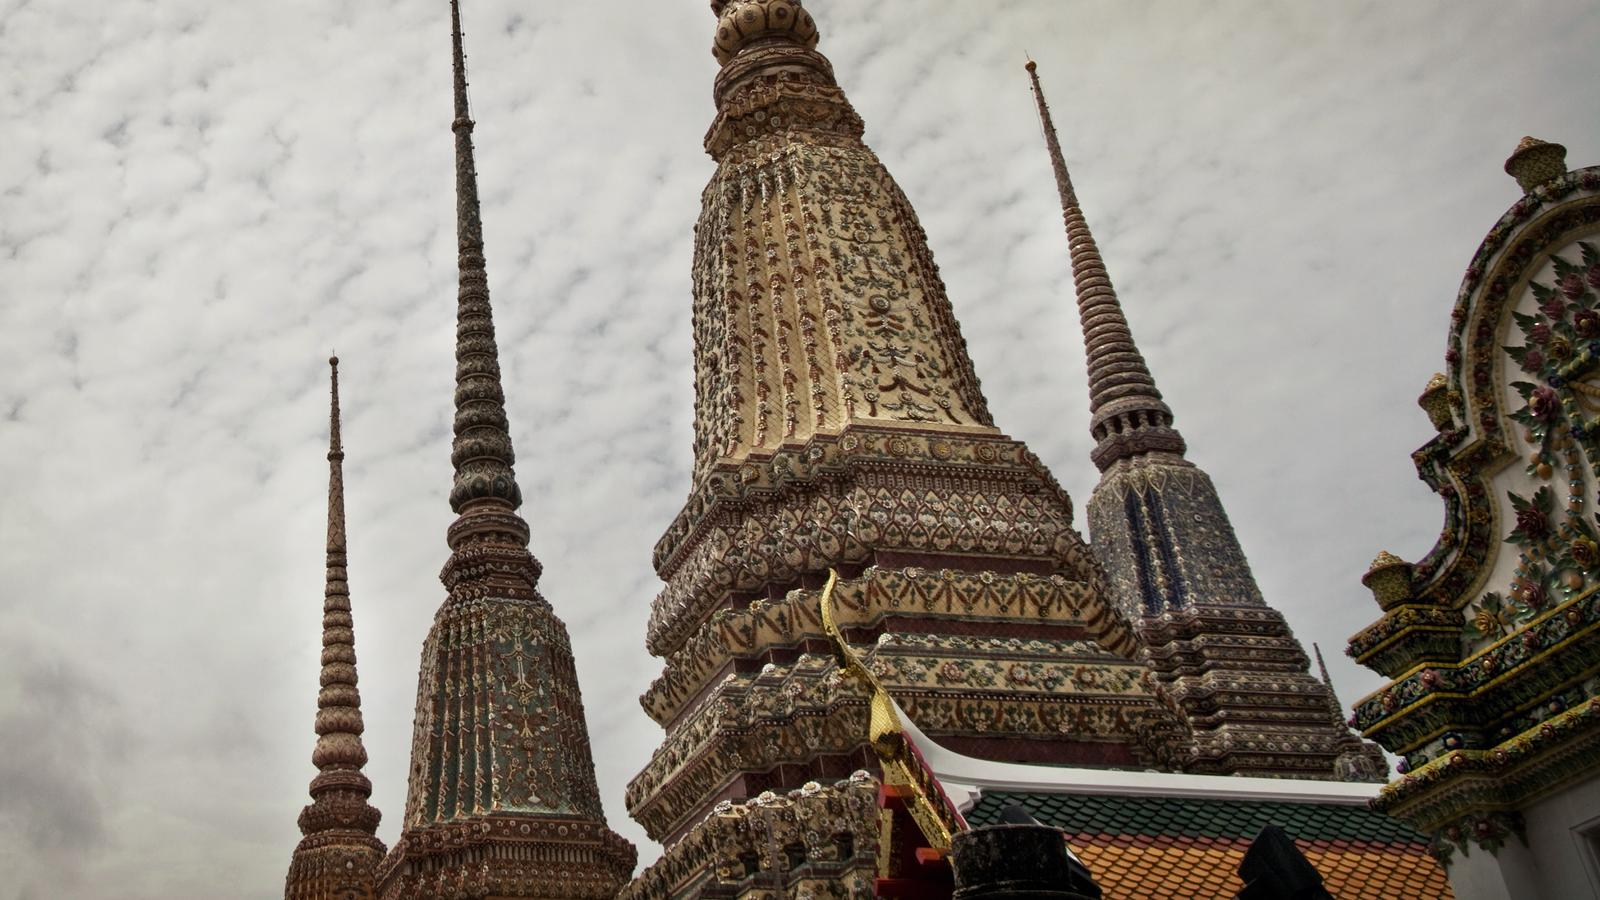 A close-up of the Wat Po temple in Thailand